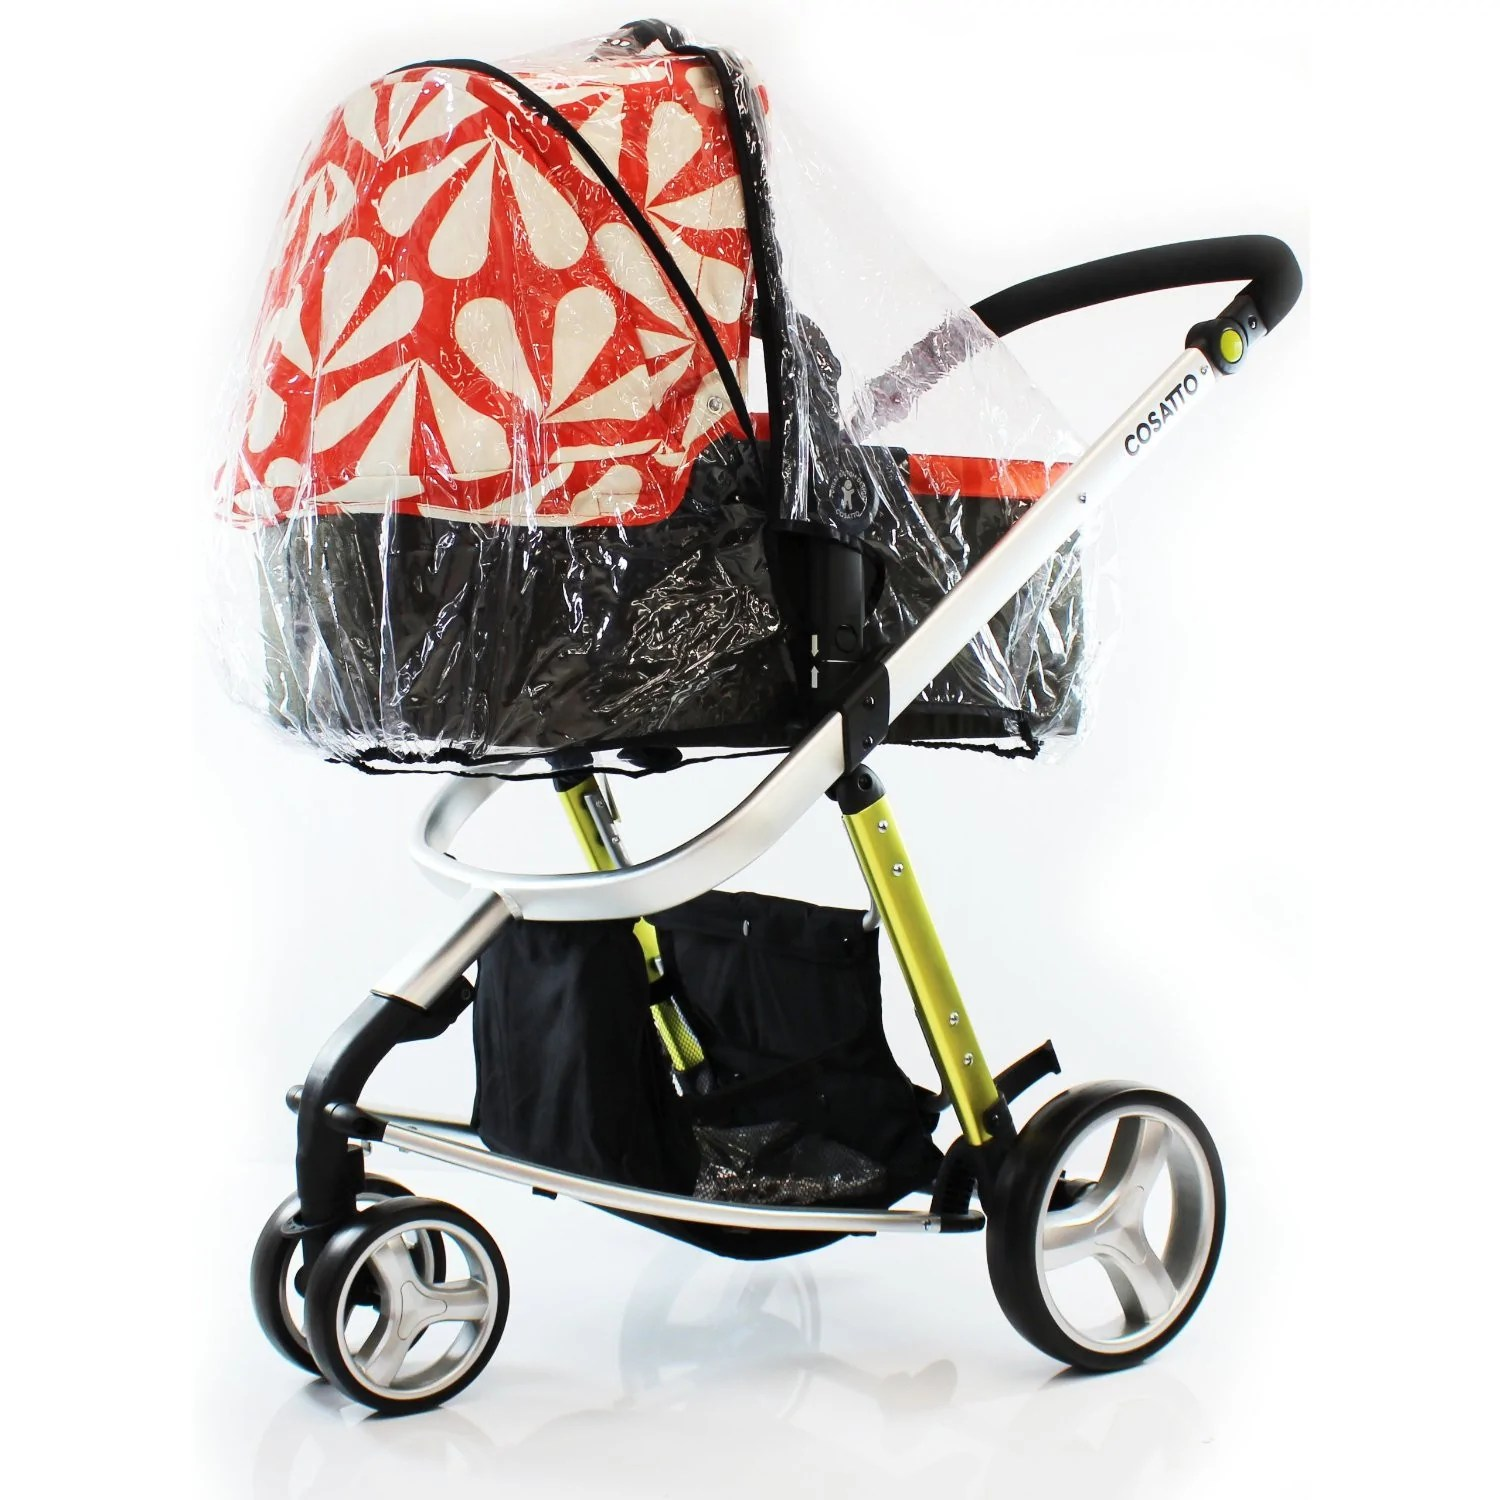 Silver Cross Pushchair Spare Parts Sale Now On Save Up To 50 Luxury Baby Prducts By Isafe